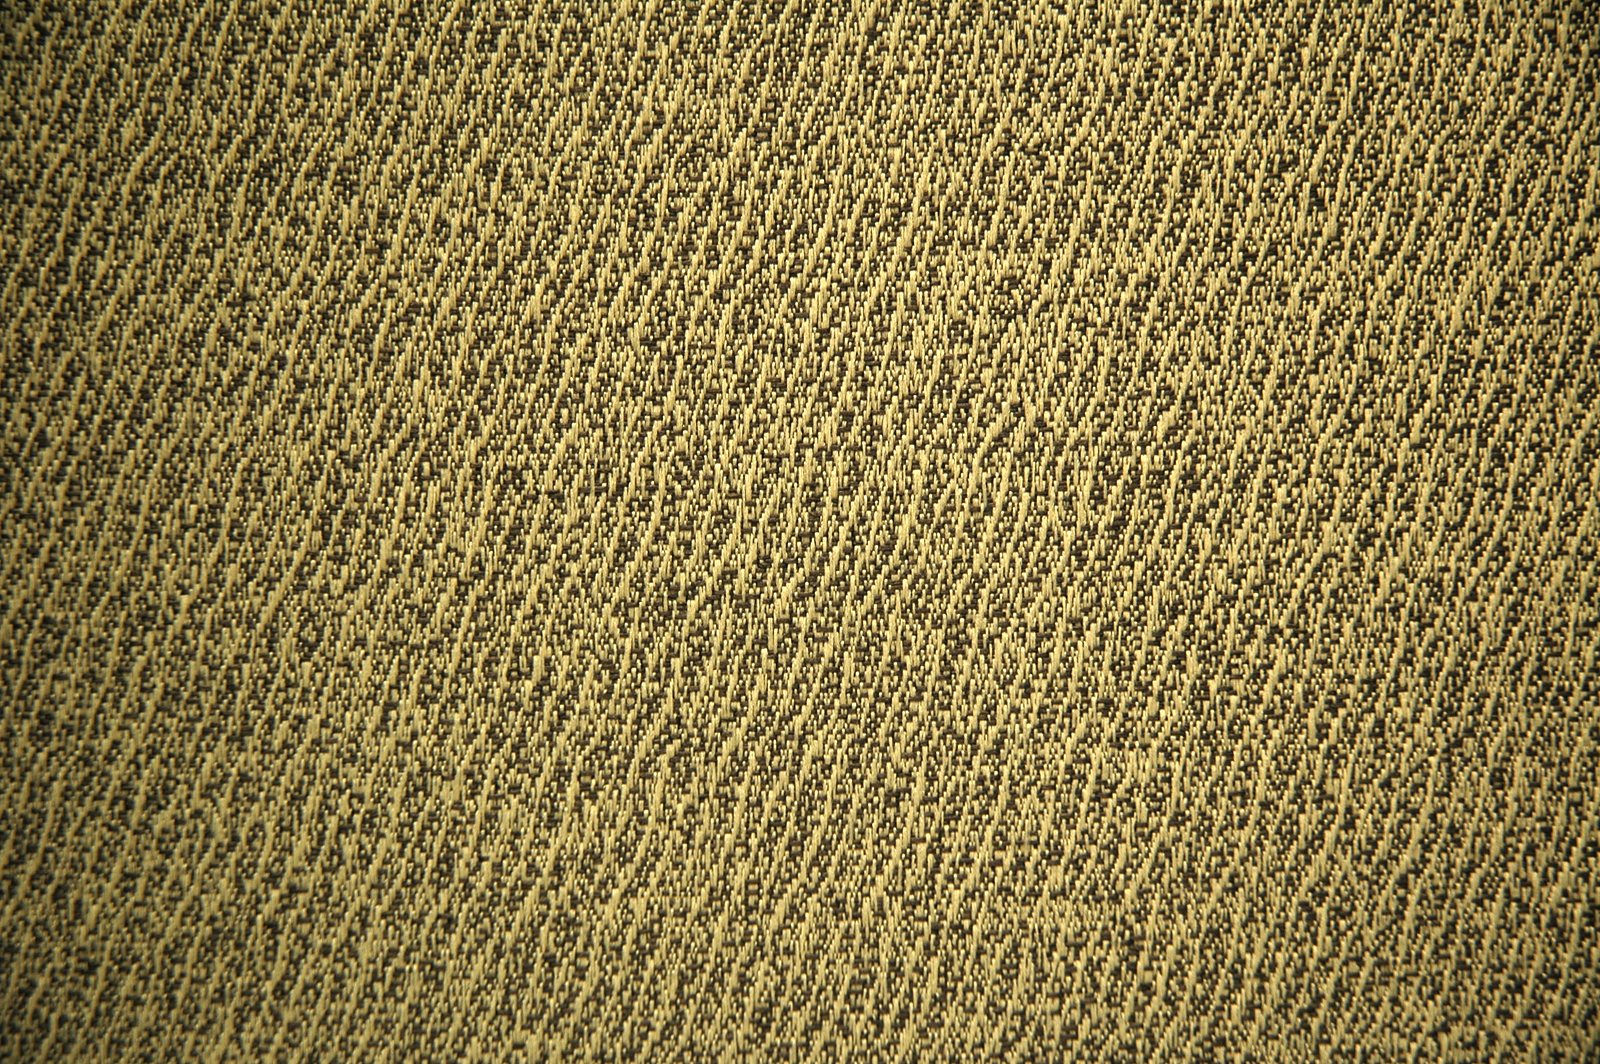 10 Free Carpet Textures Full Range Of Styles From Shag To